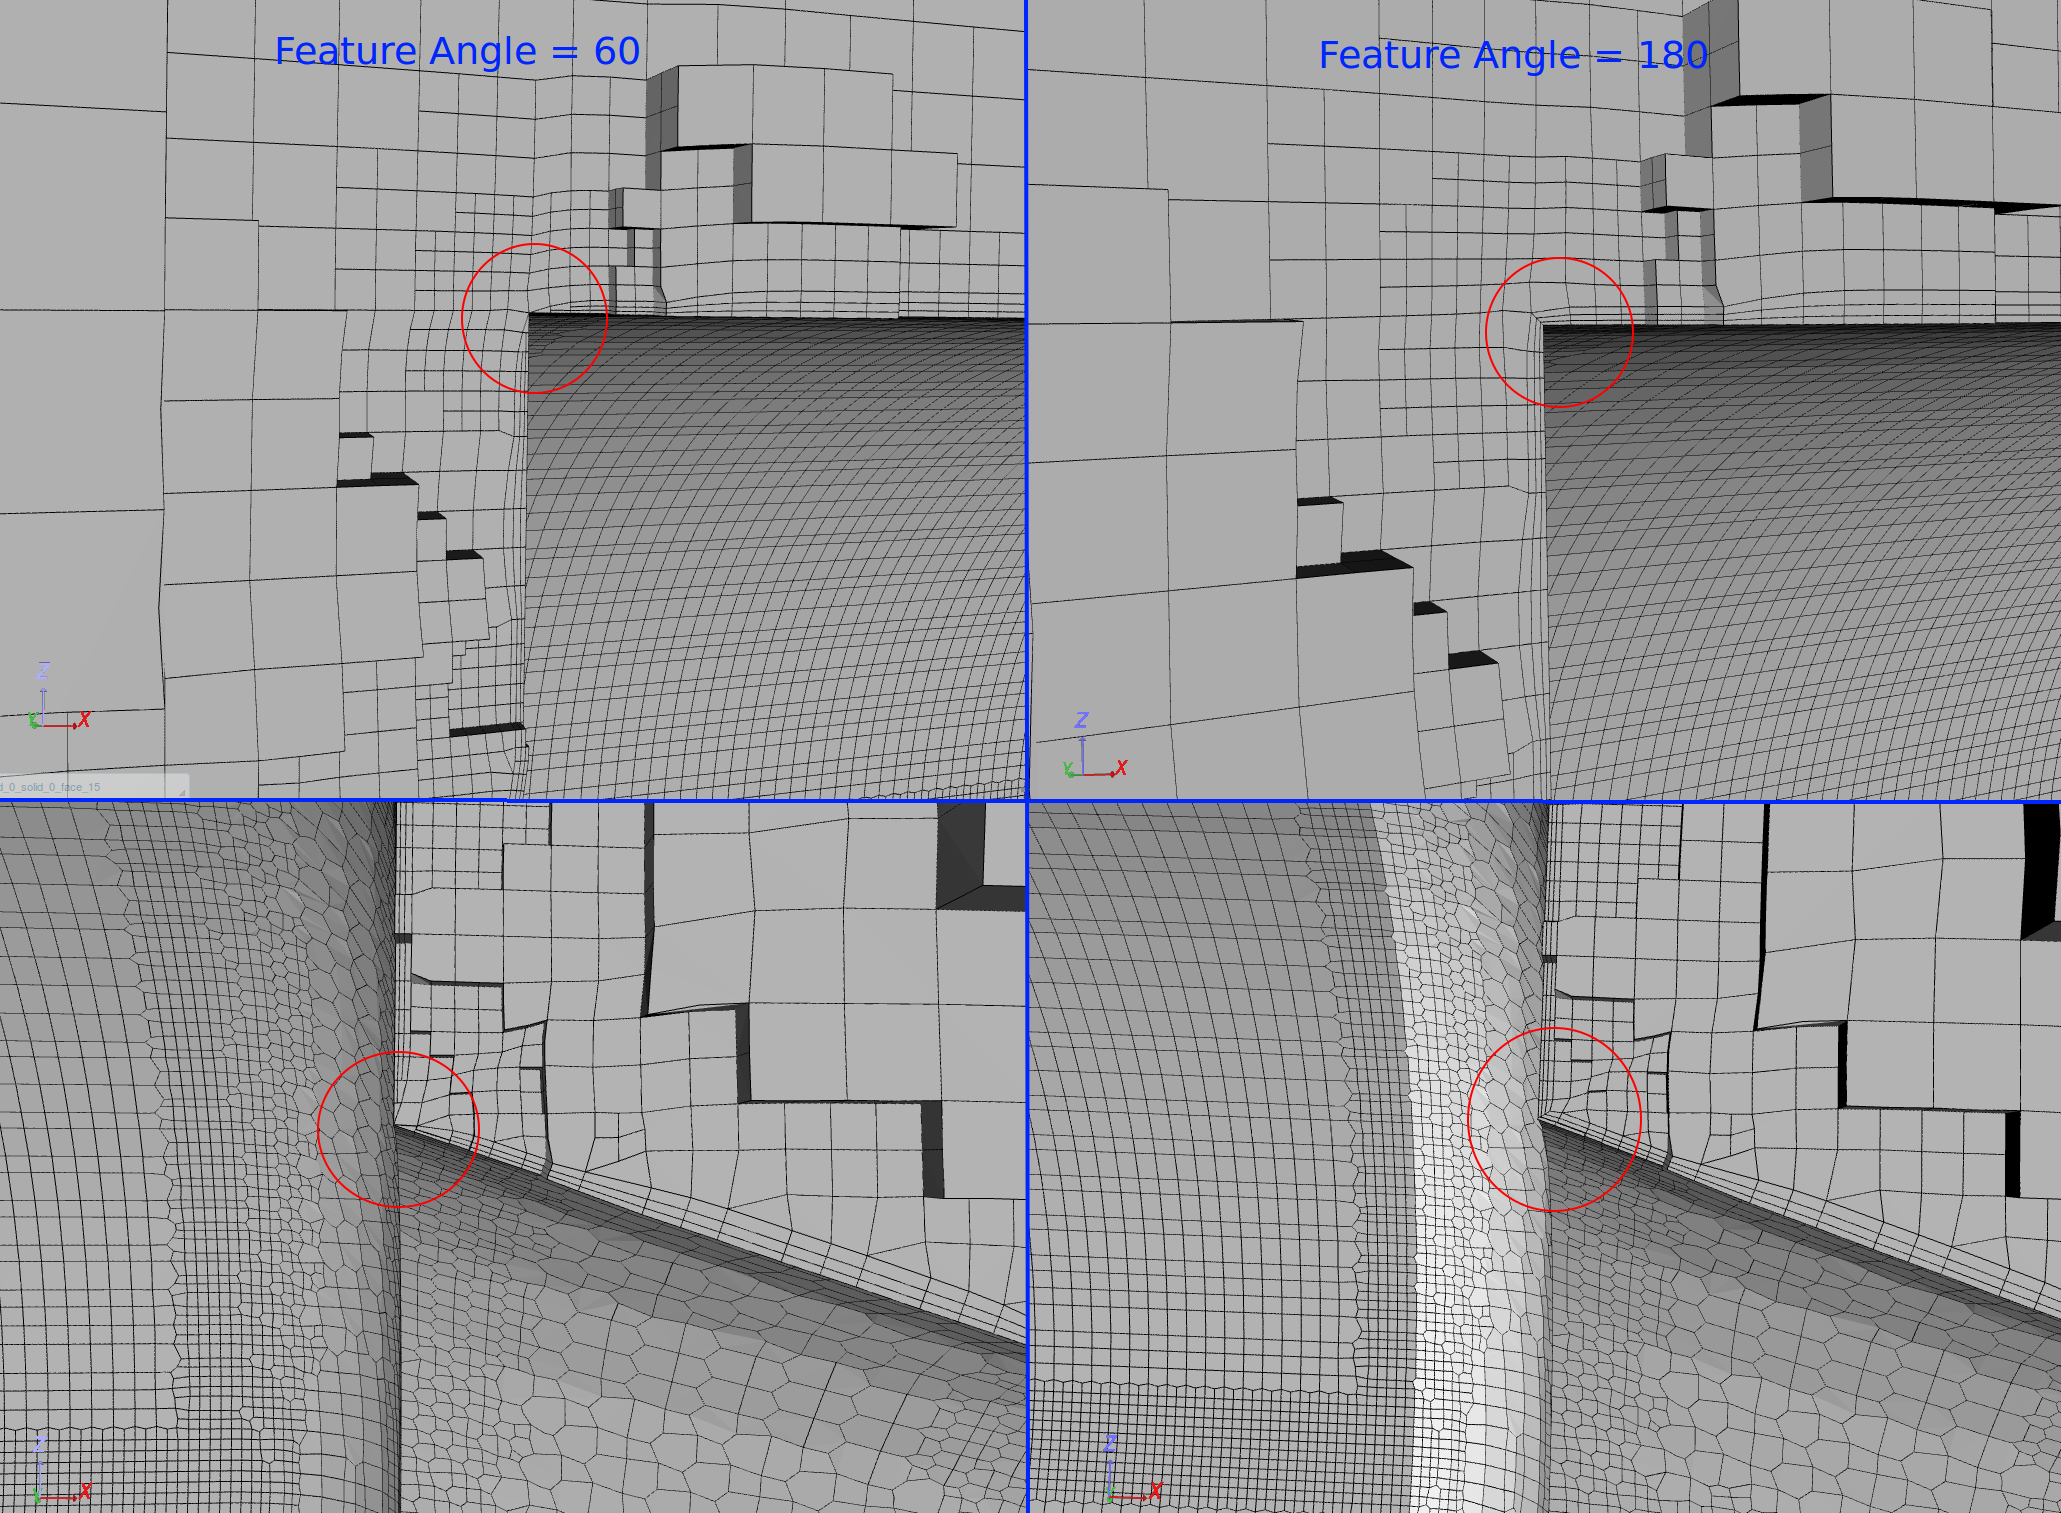 SHM_Max Face Angle For Layer Generation (featureAngle)